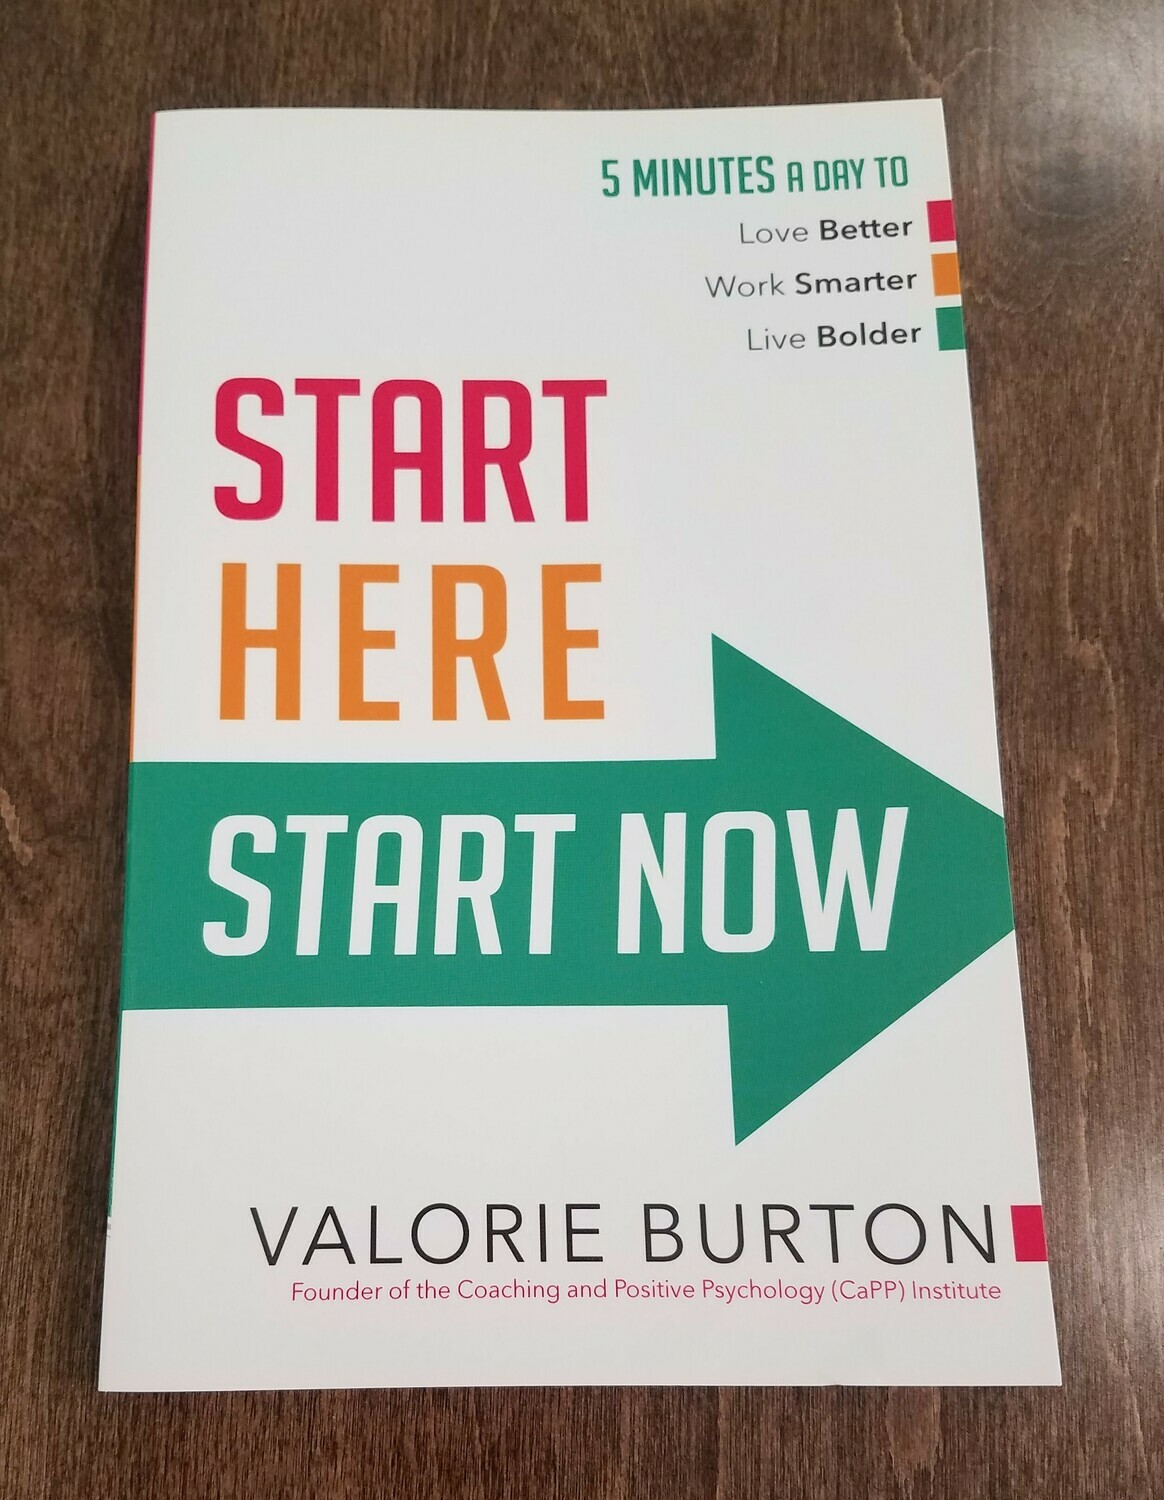 Start Here, Start Now by Valorie Burton